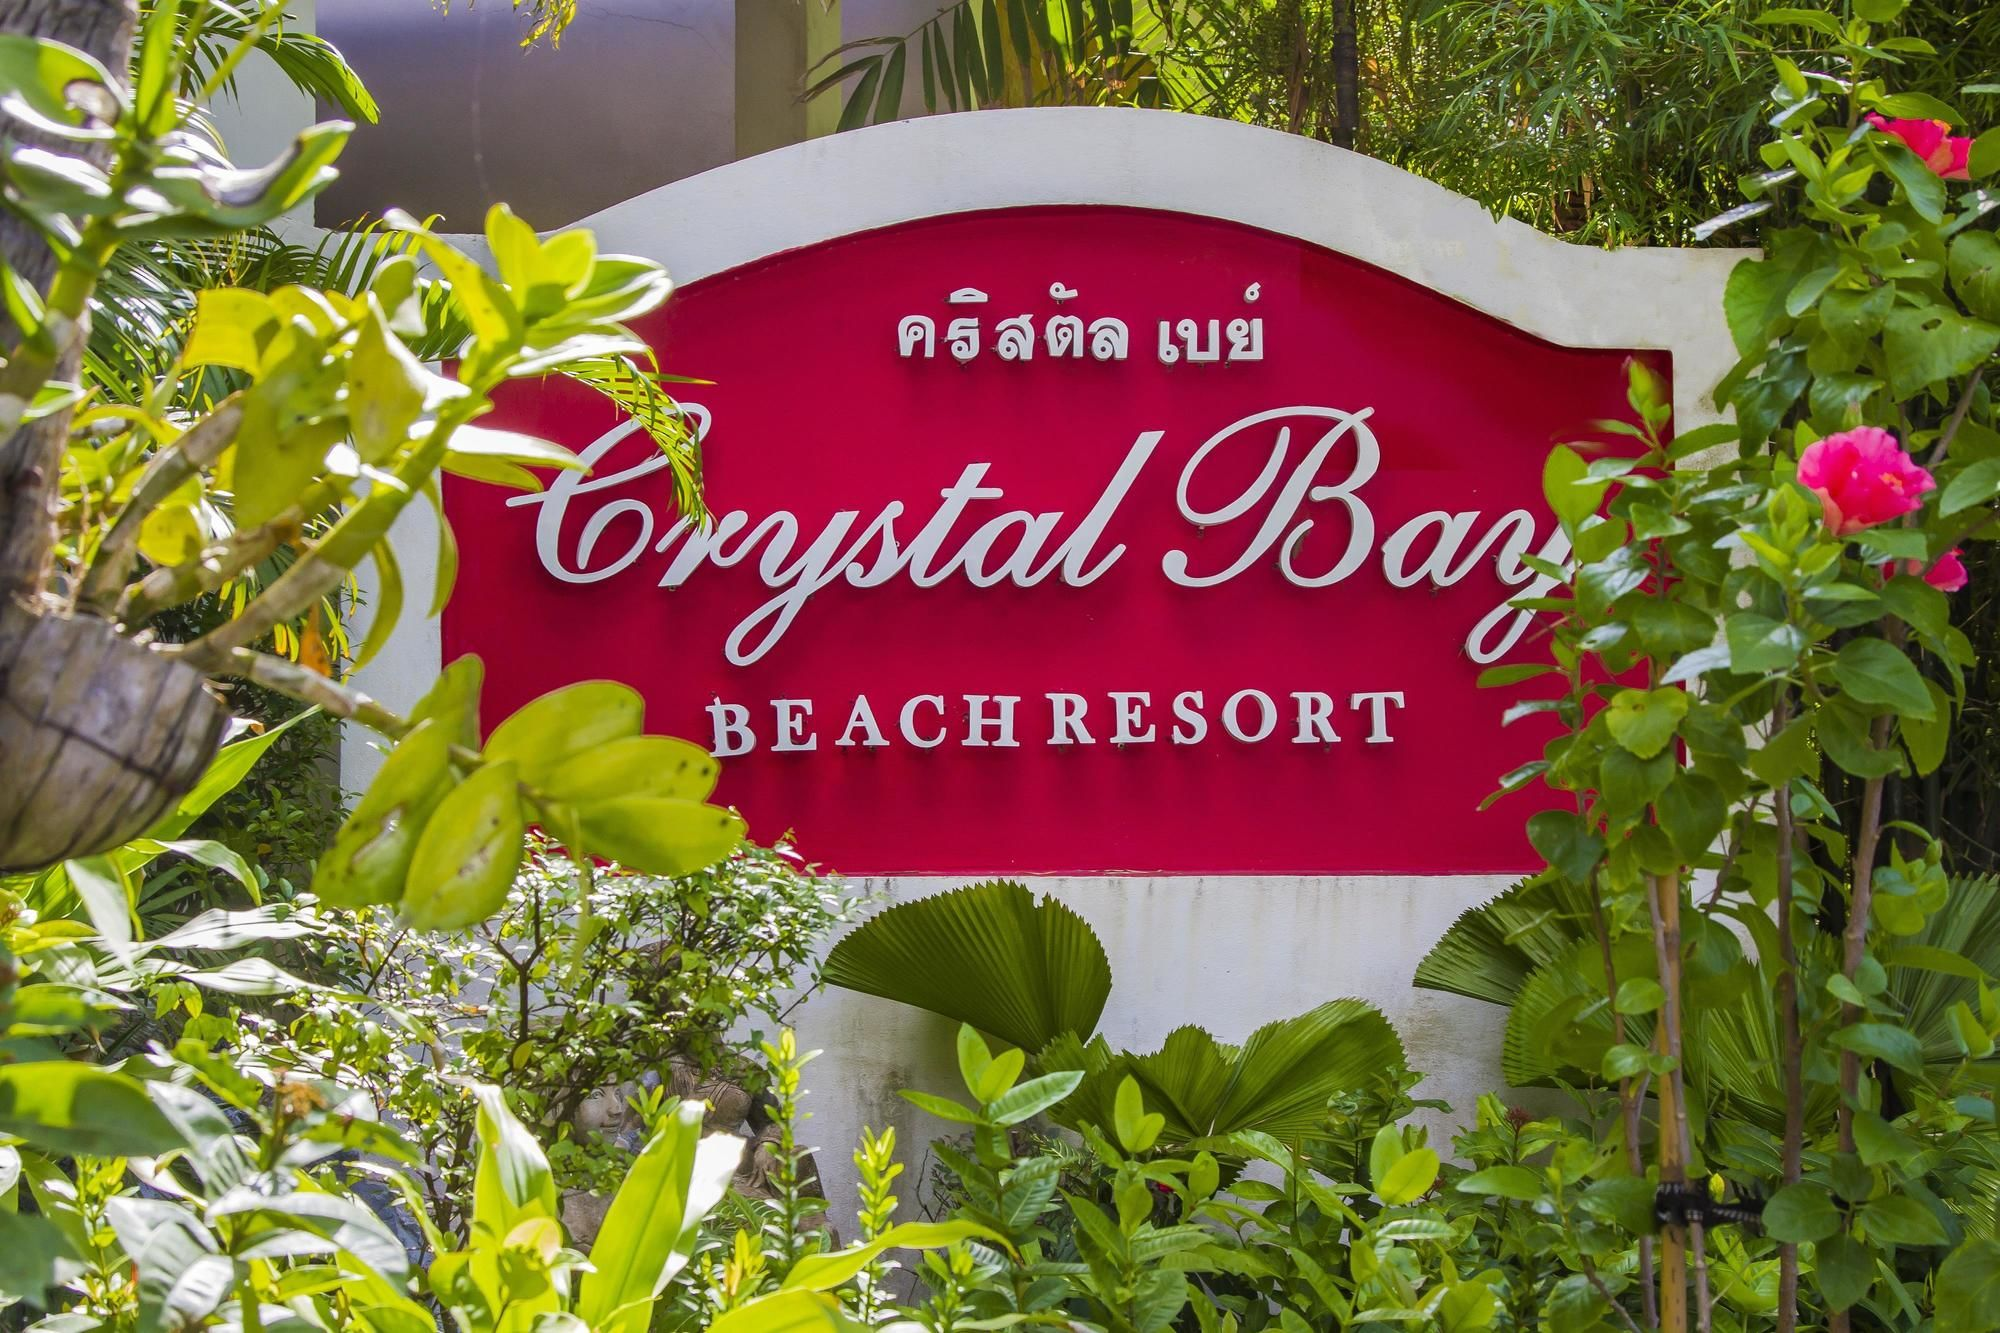 Crystal Bay Resort